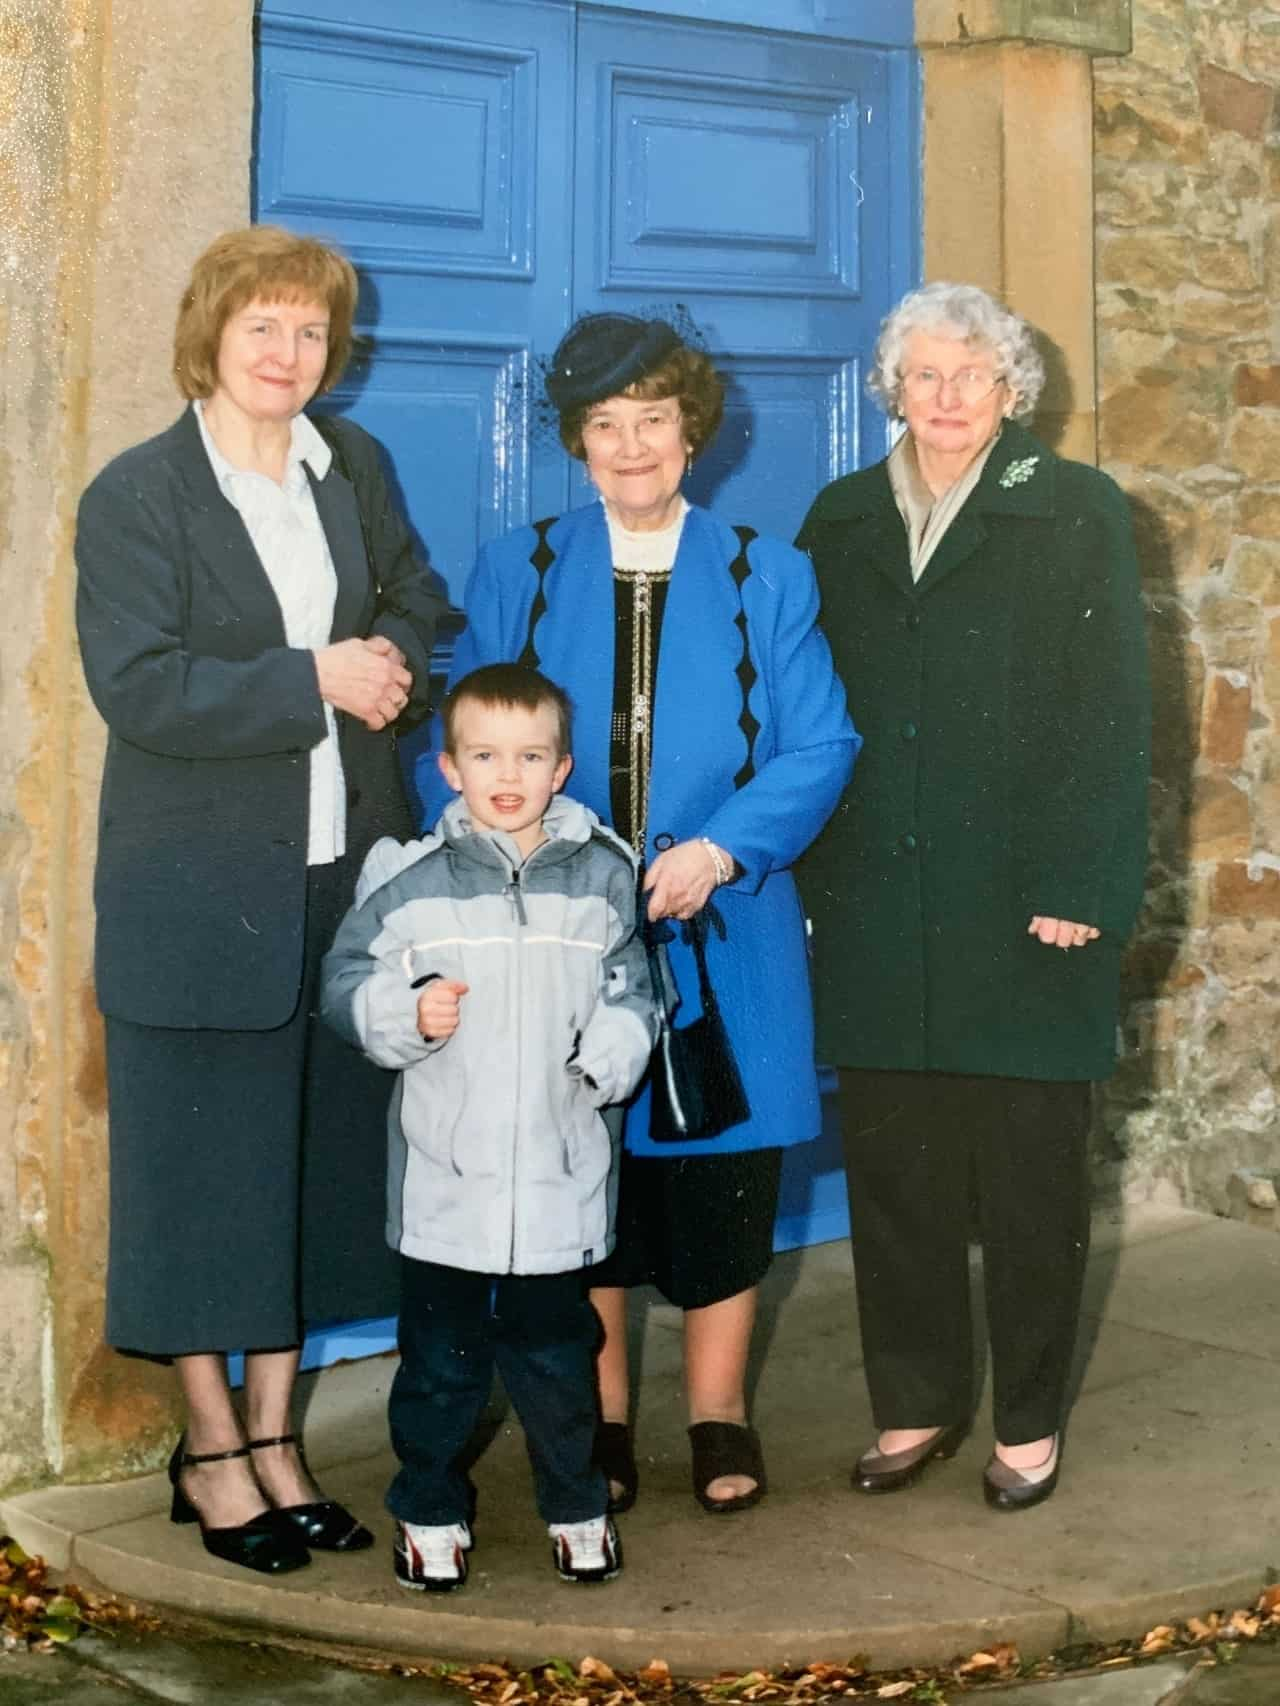 Cometan with his brother Kieran TaylCometan with his maternal grandmother, Hilda Warbrick (left), his paternal grandmother, Irene Taylor (centre), and his great aunt, Monica Bolton (right)orian in Spain